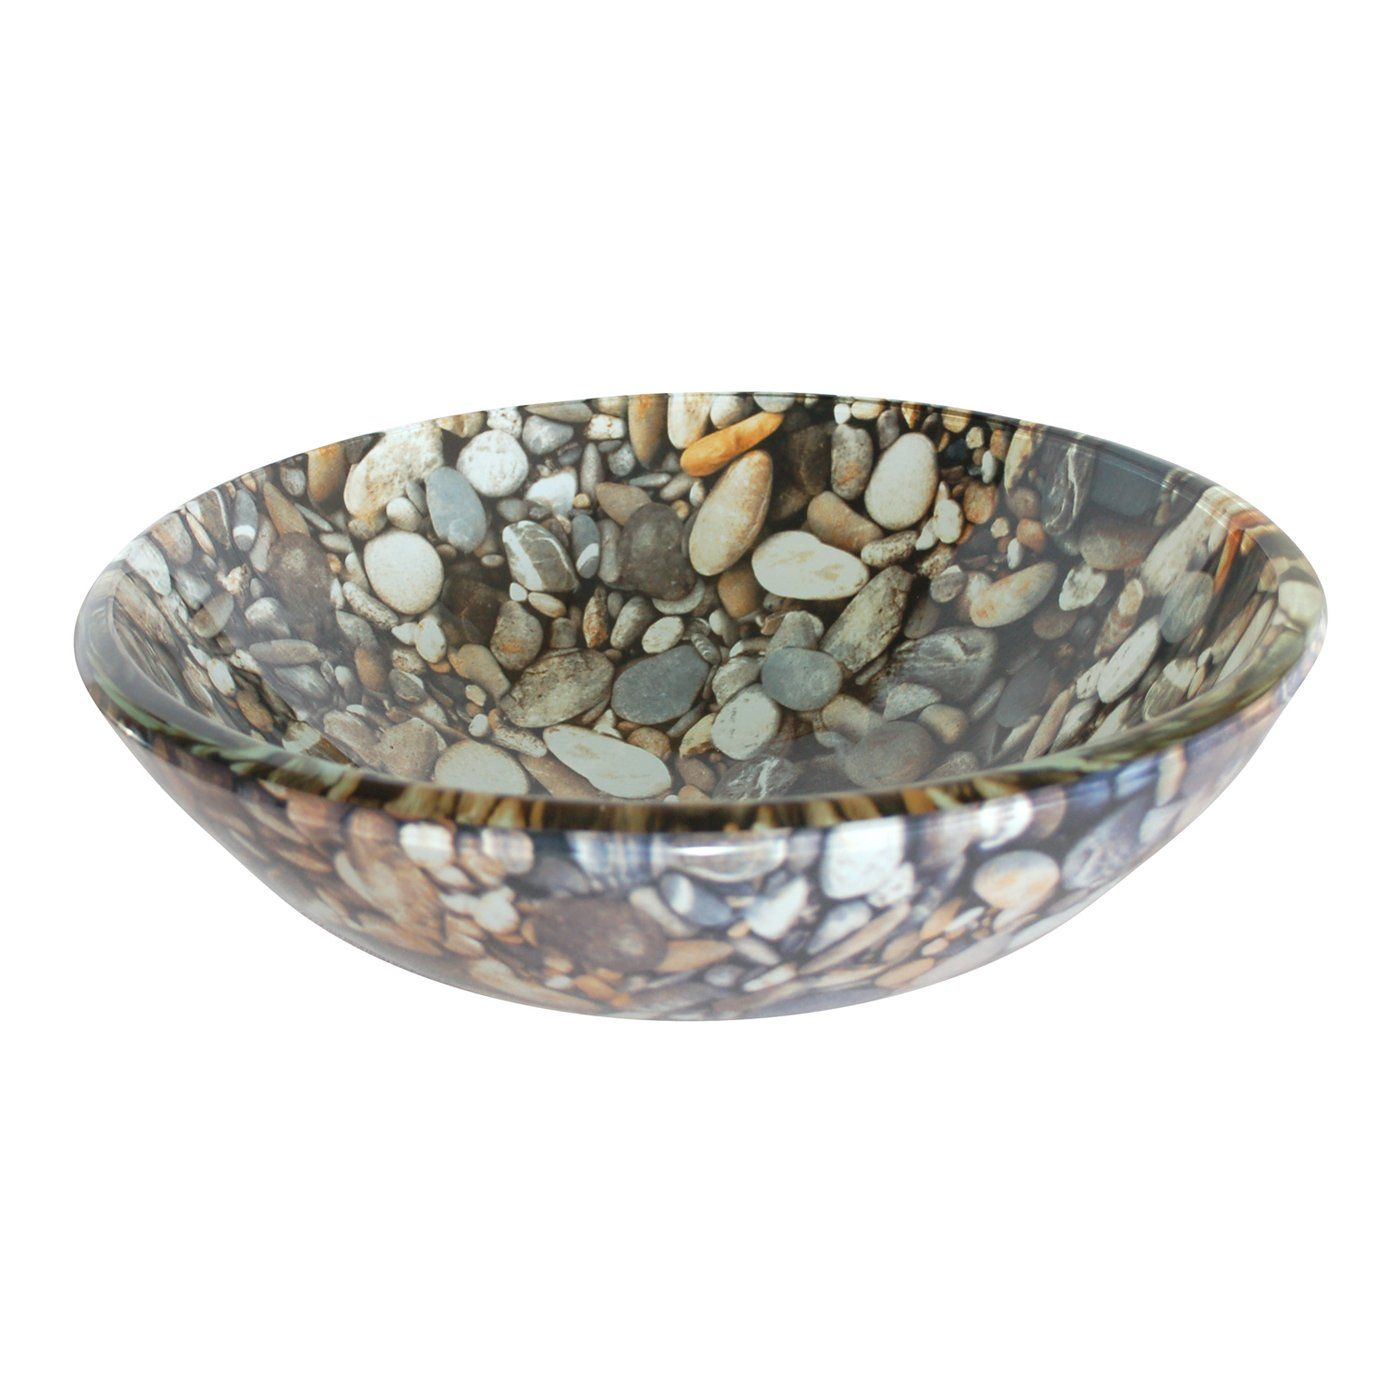 Shop Eden Bath Natural Pebble Pattern Glass Vessel Sink At Loweu0027s Canada.  Find Our Selection Of Bathroom Sinks At The Lowest Price Guaranteed With  Price ...